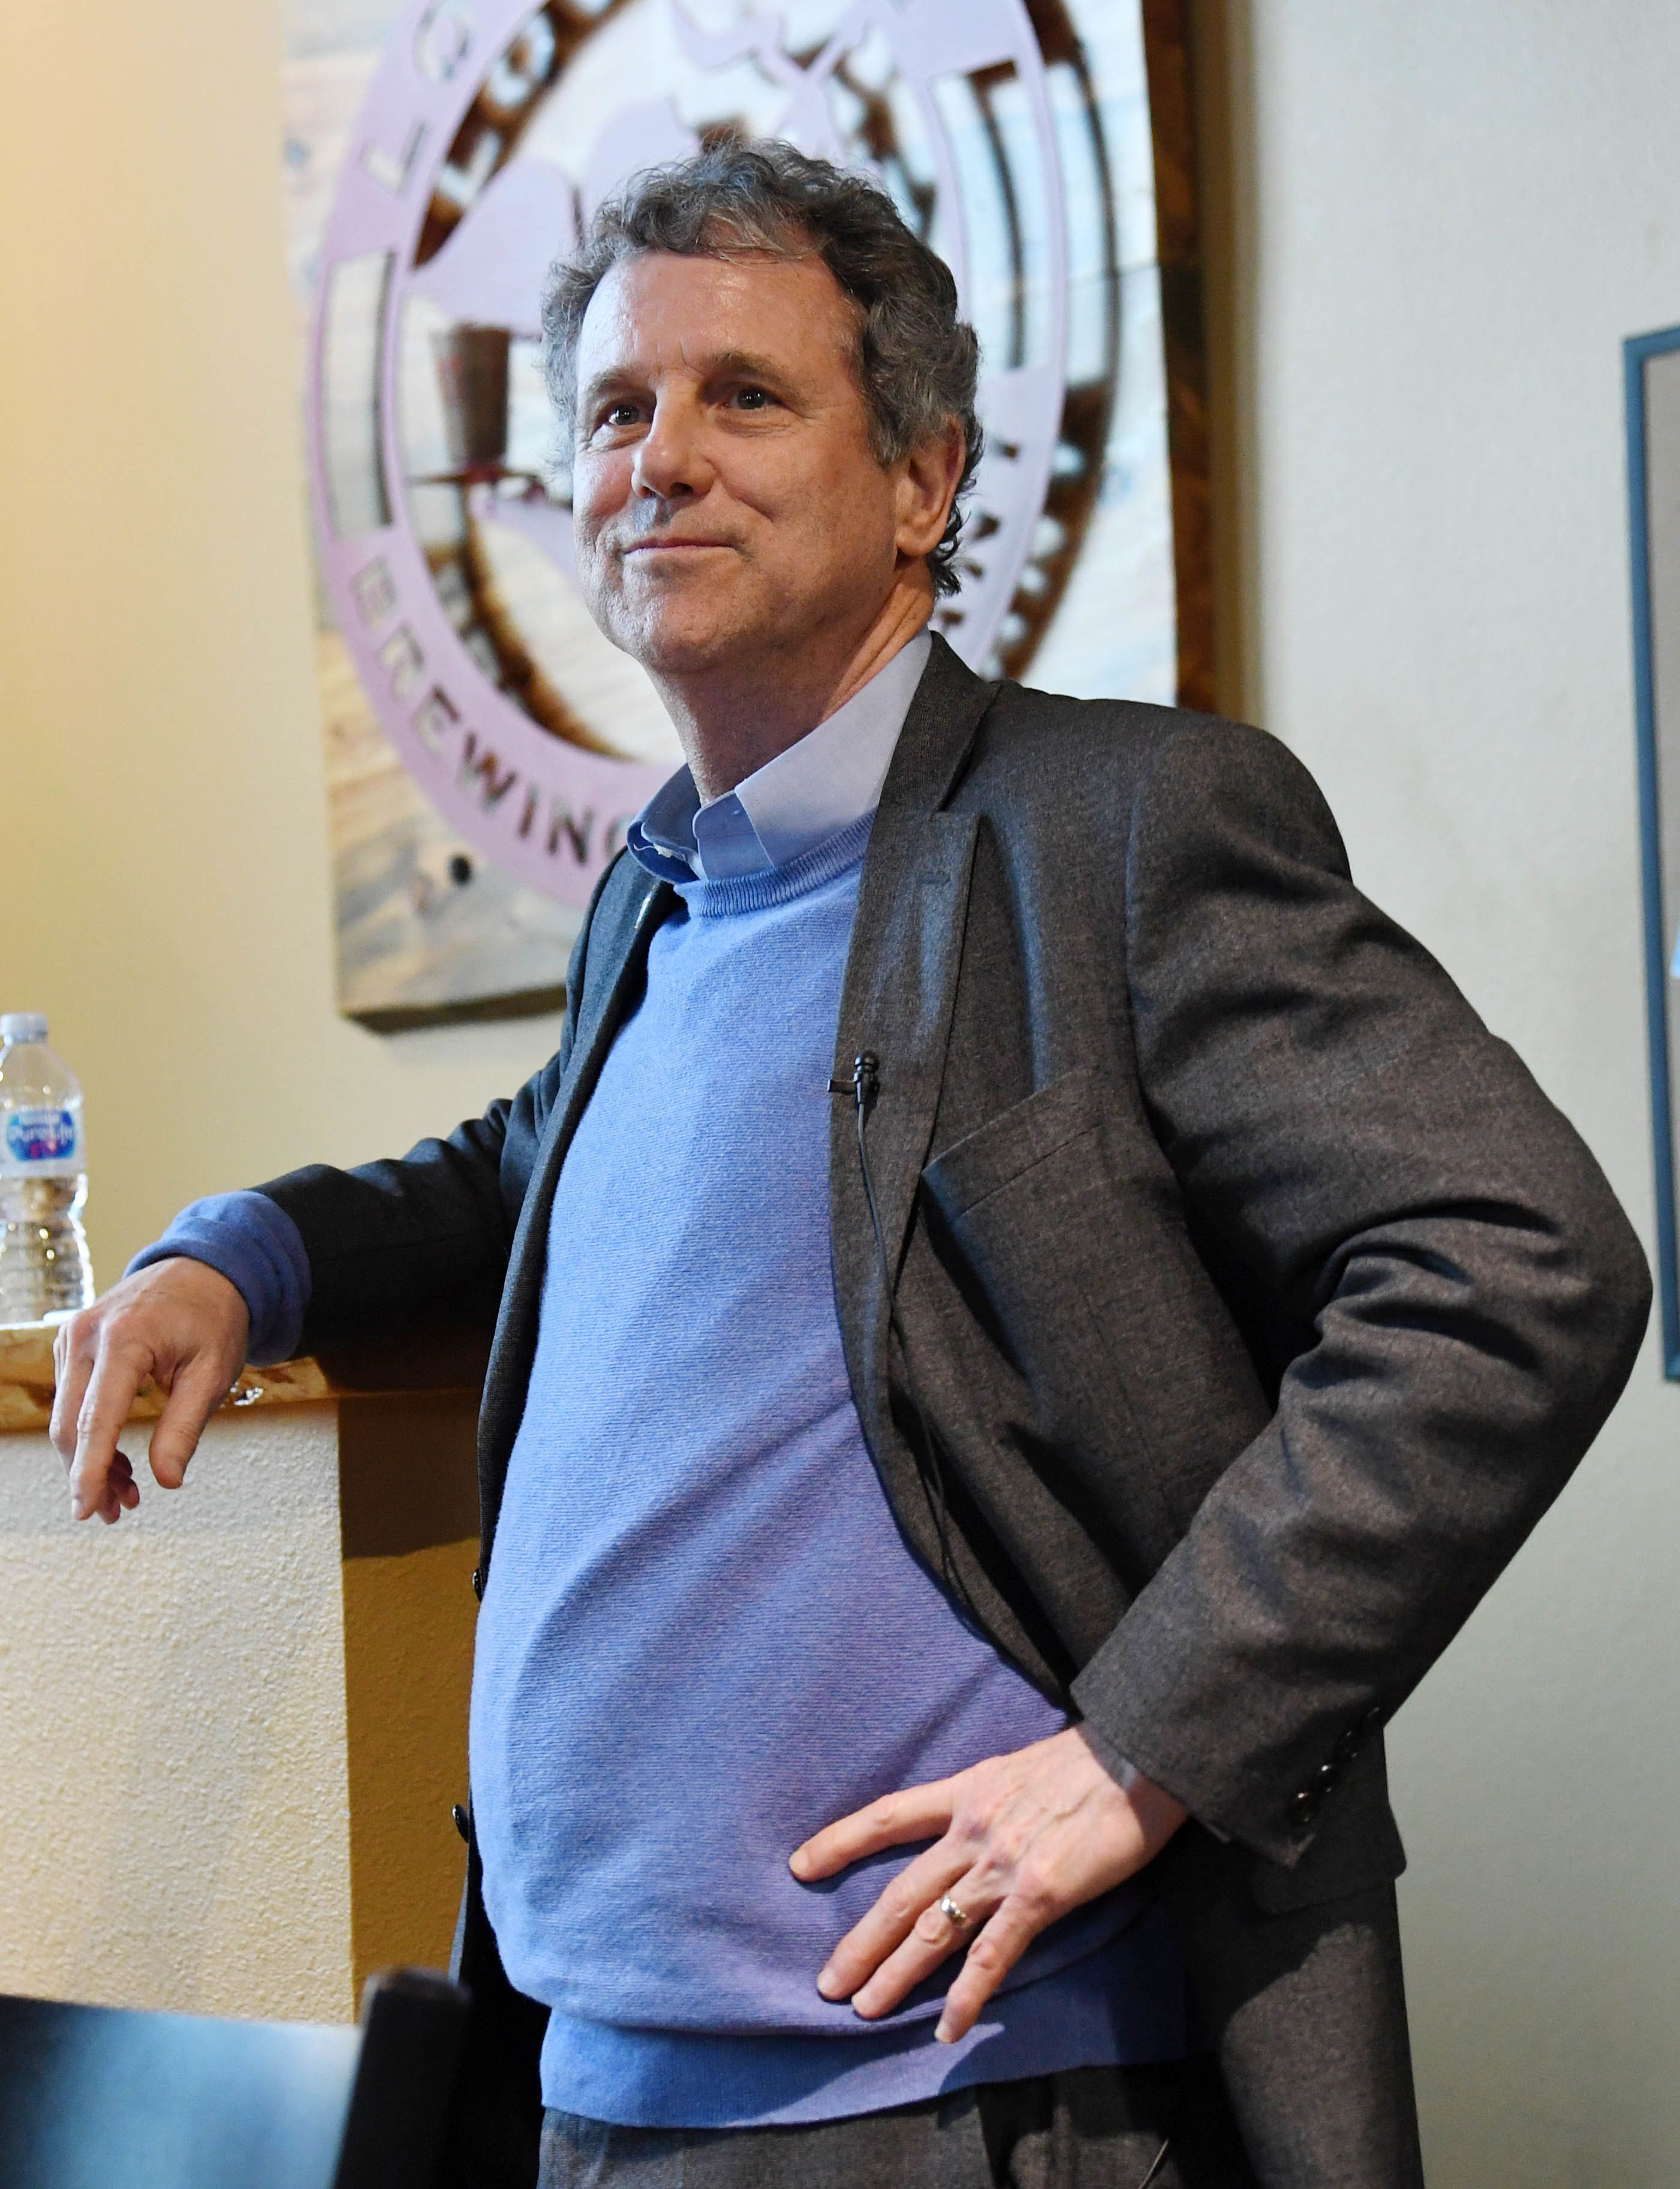 This is a pretty half-hearted smile, Sen. Brown. Do better.